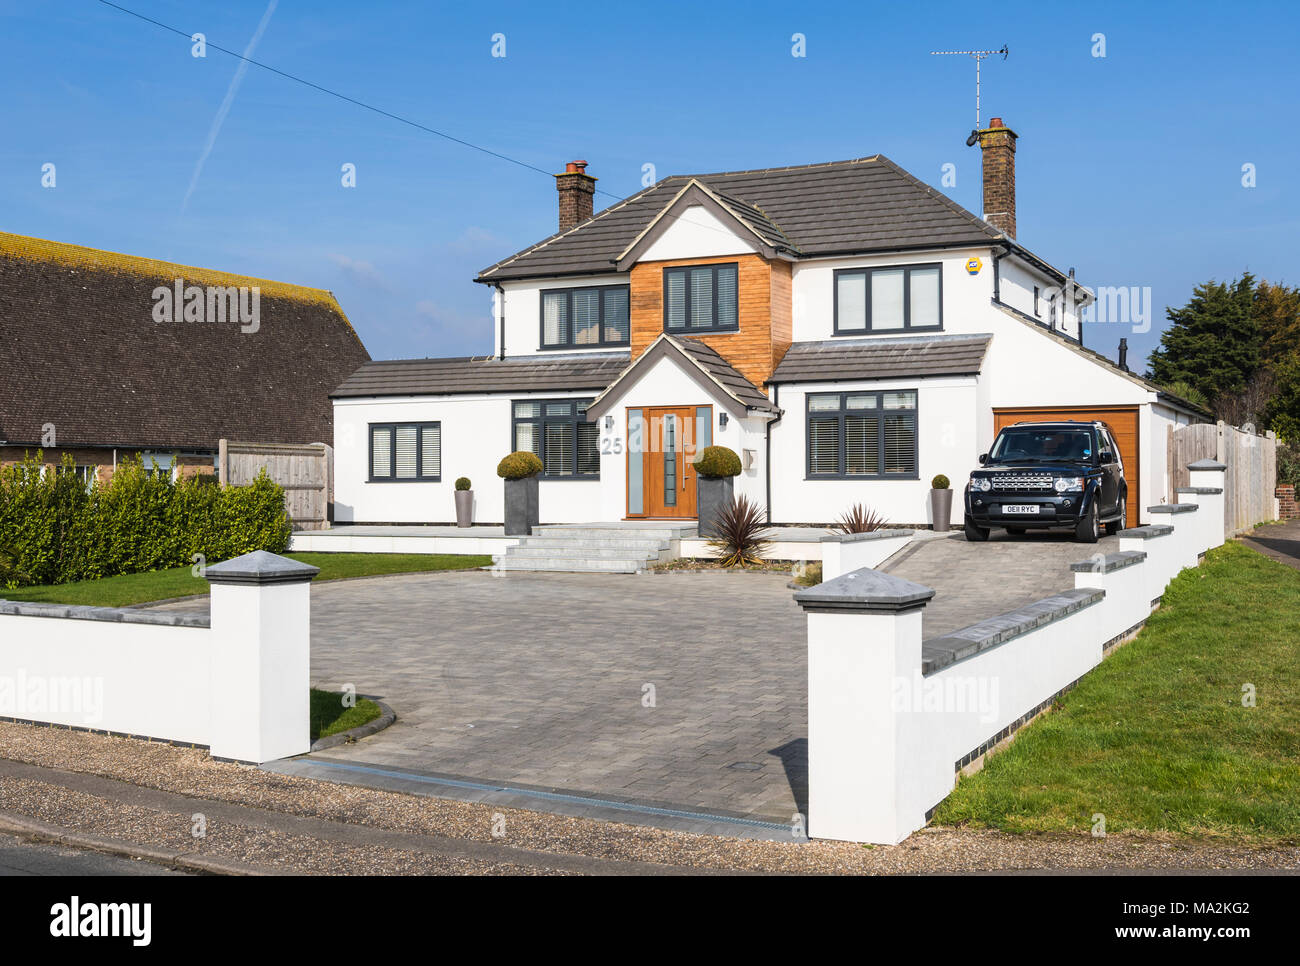 Large modern new detached house in a town in west sussex england uk